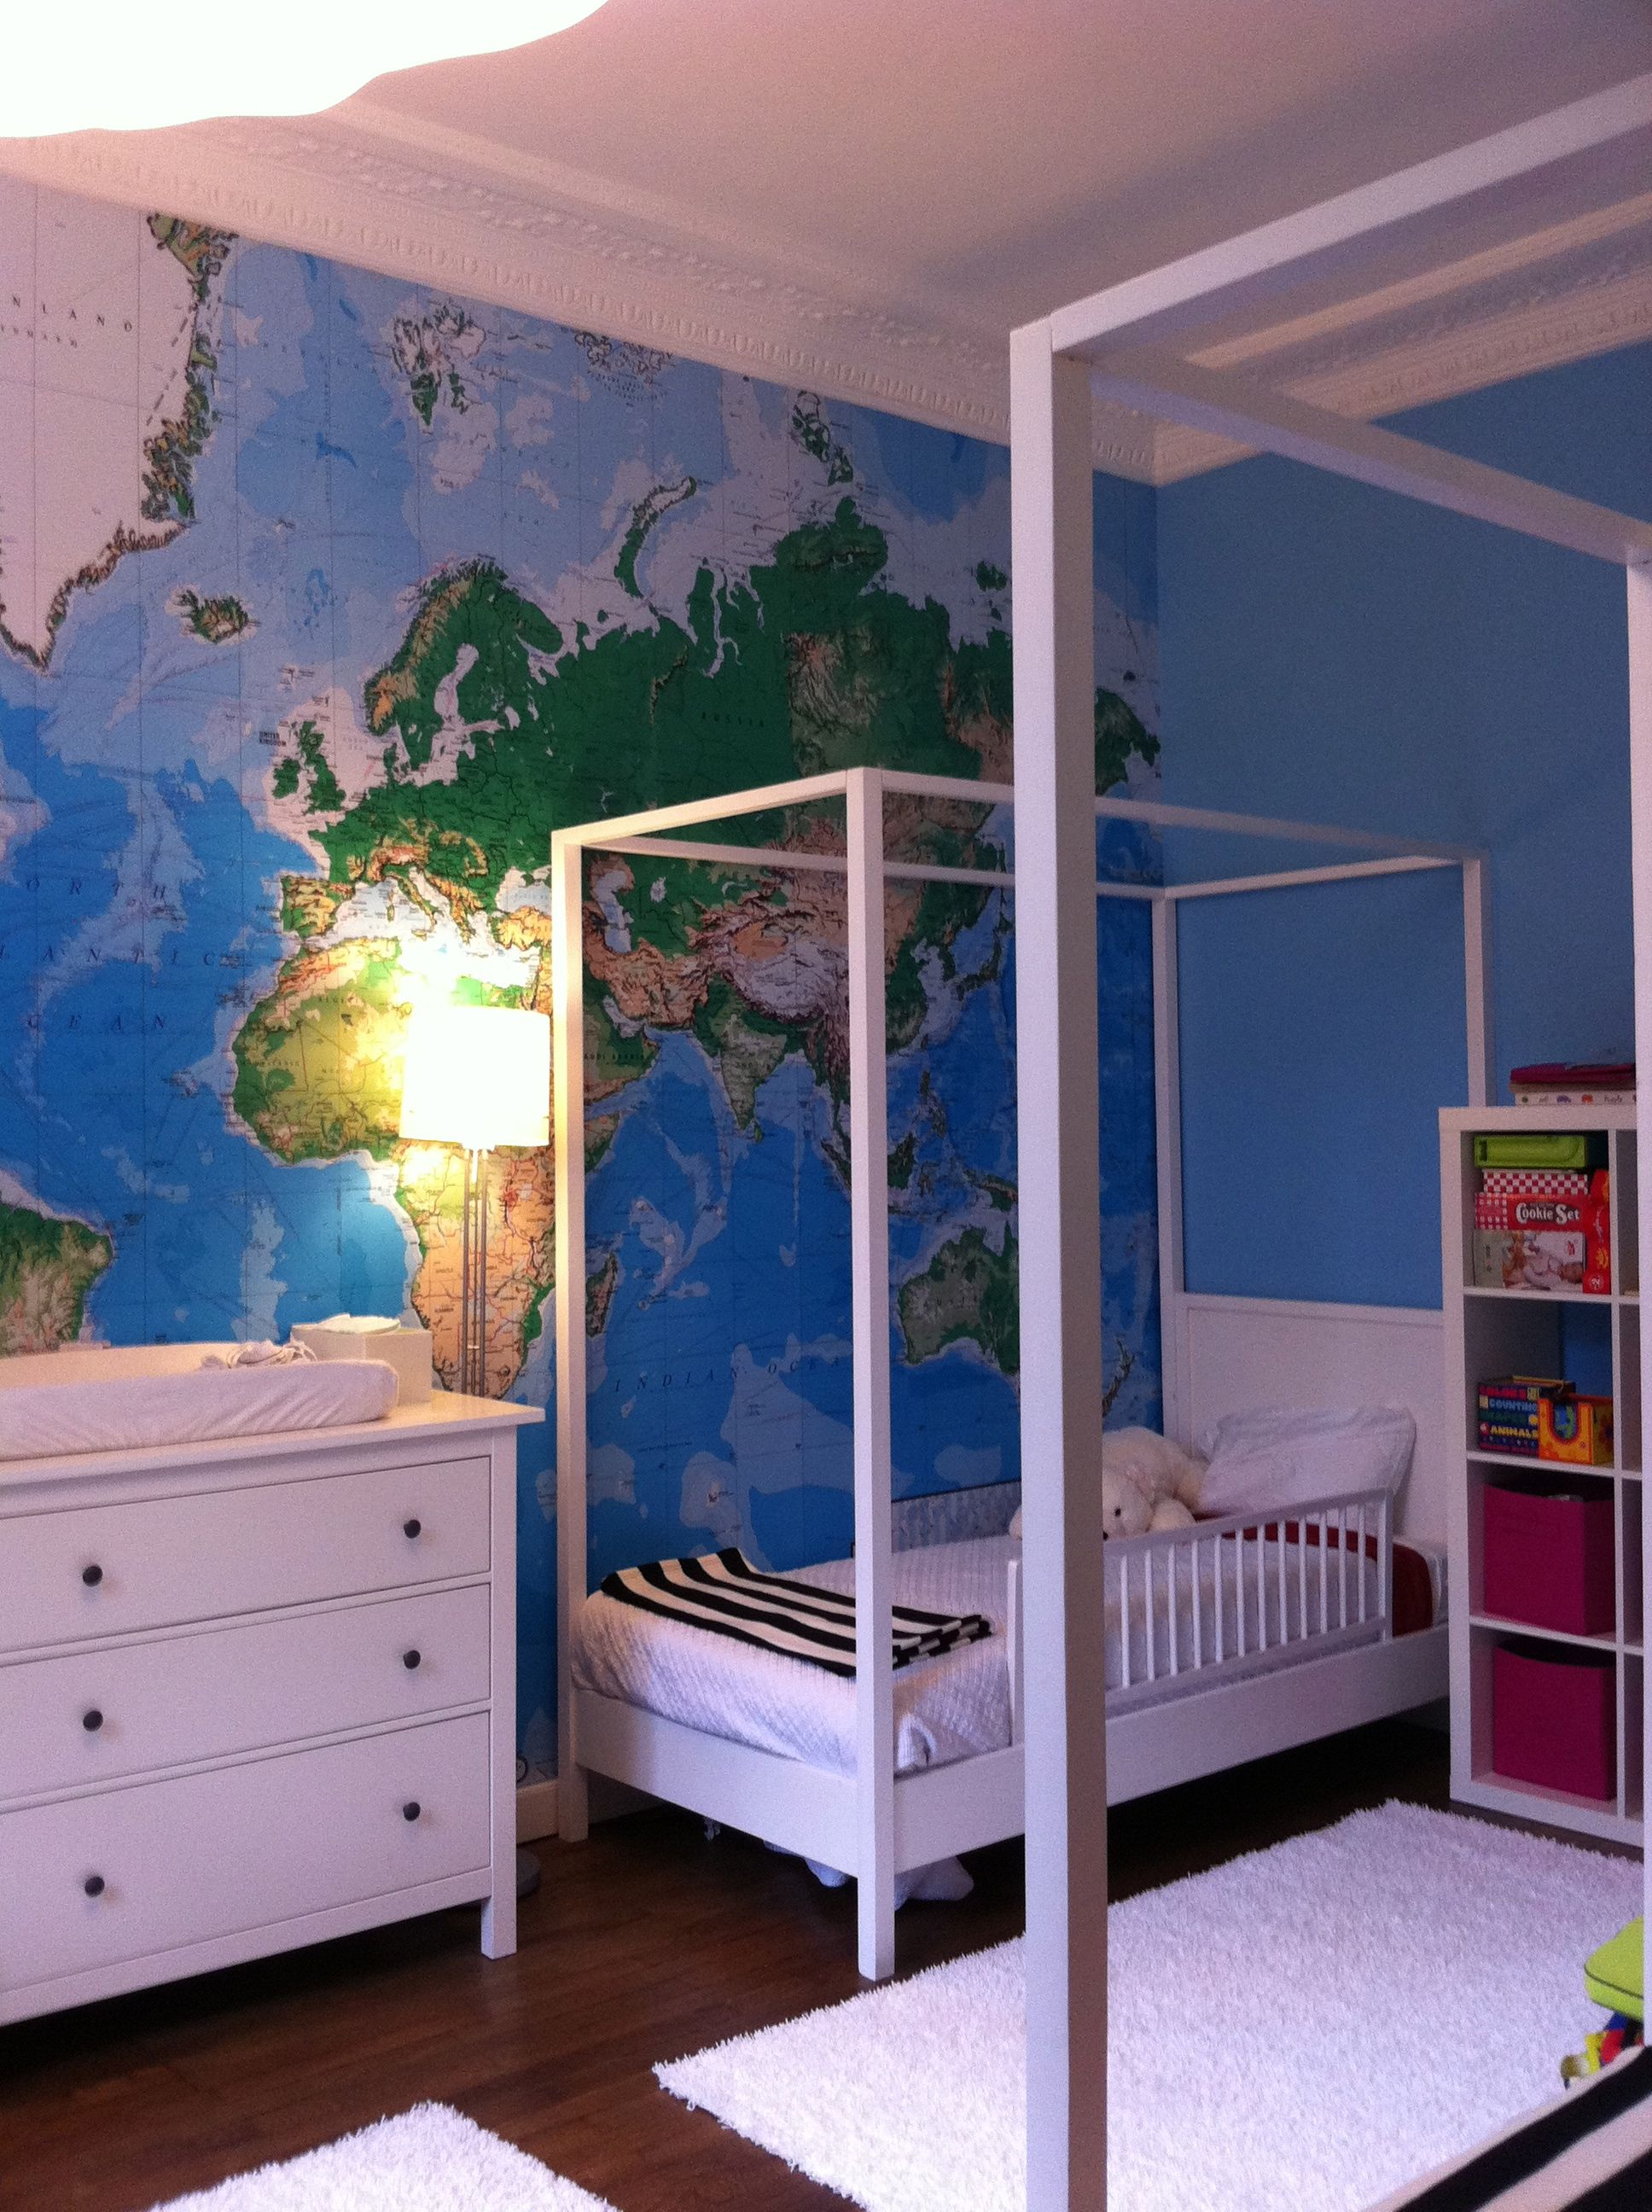 White Furniture With Giant World Map Wallpaper Kids Room Boys Room Girls Room Kids Room Wallpaper Kids Bedroom Designs Boy Room